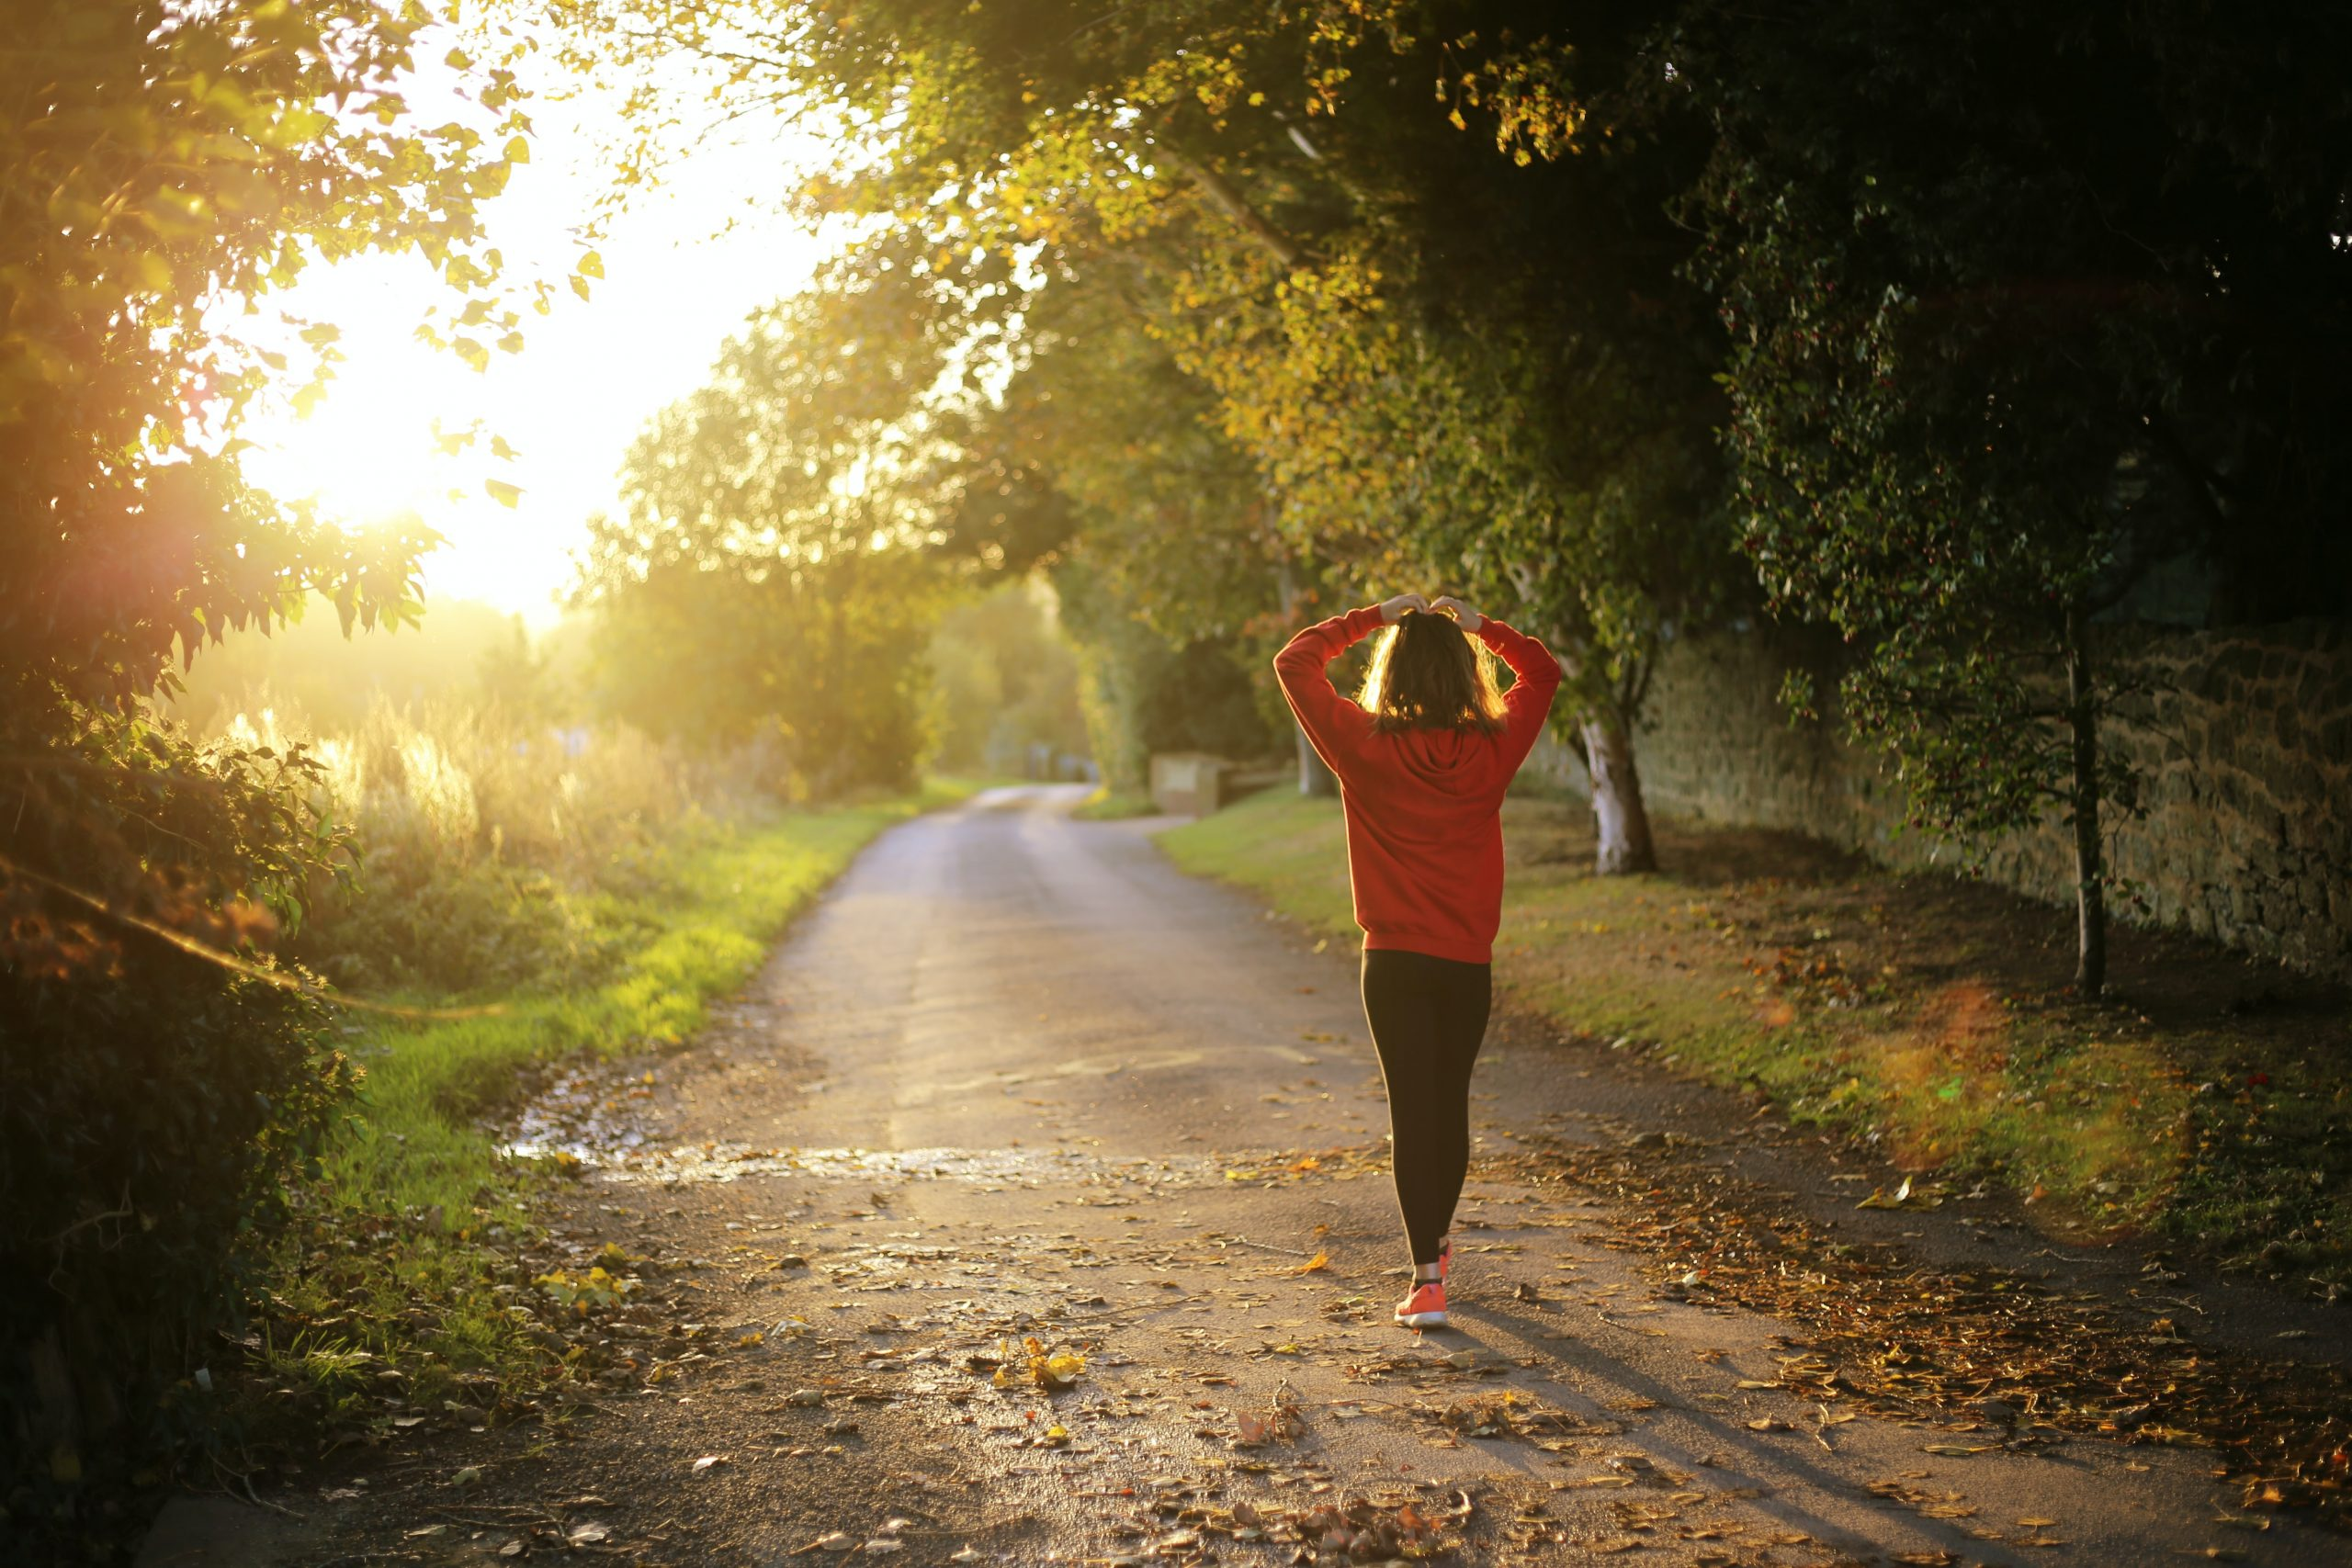 A woman running along a road in the morning, surrounded by foliage